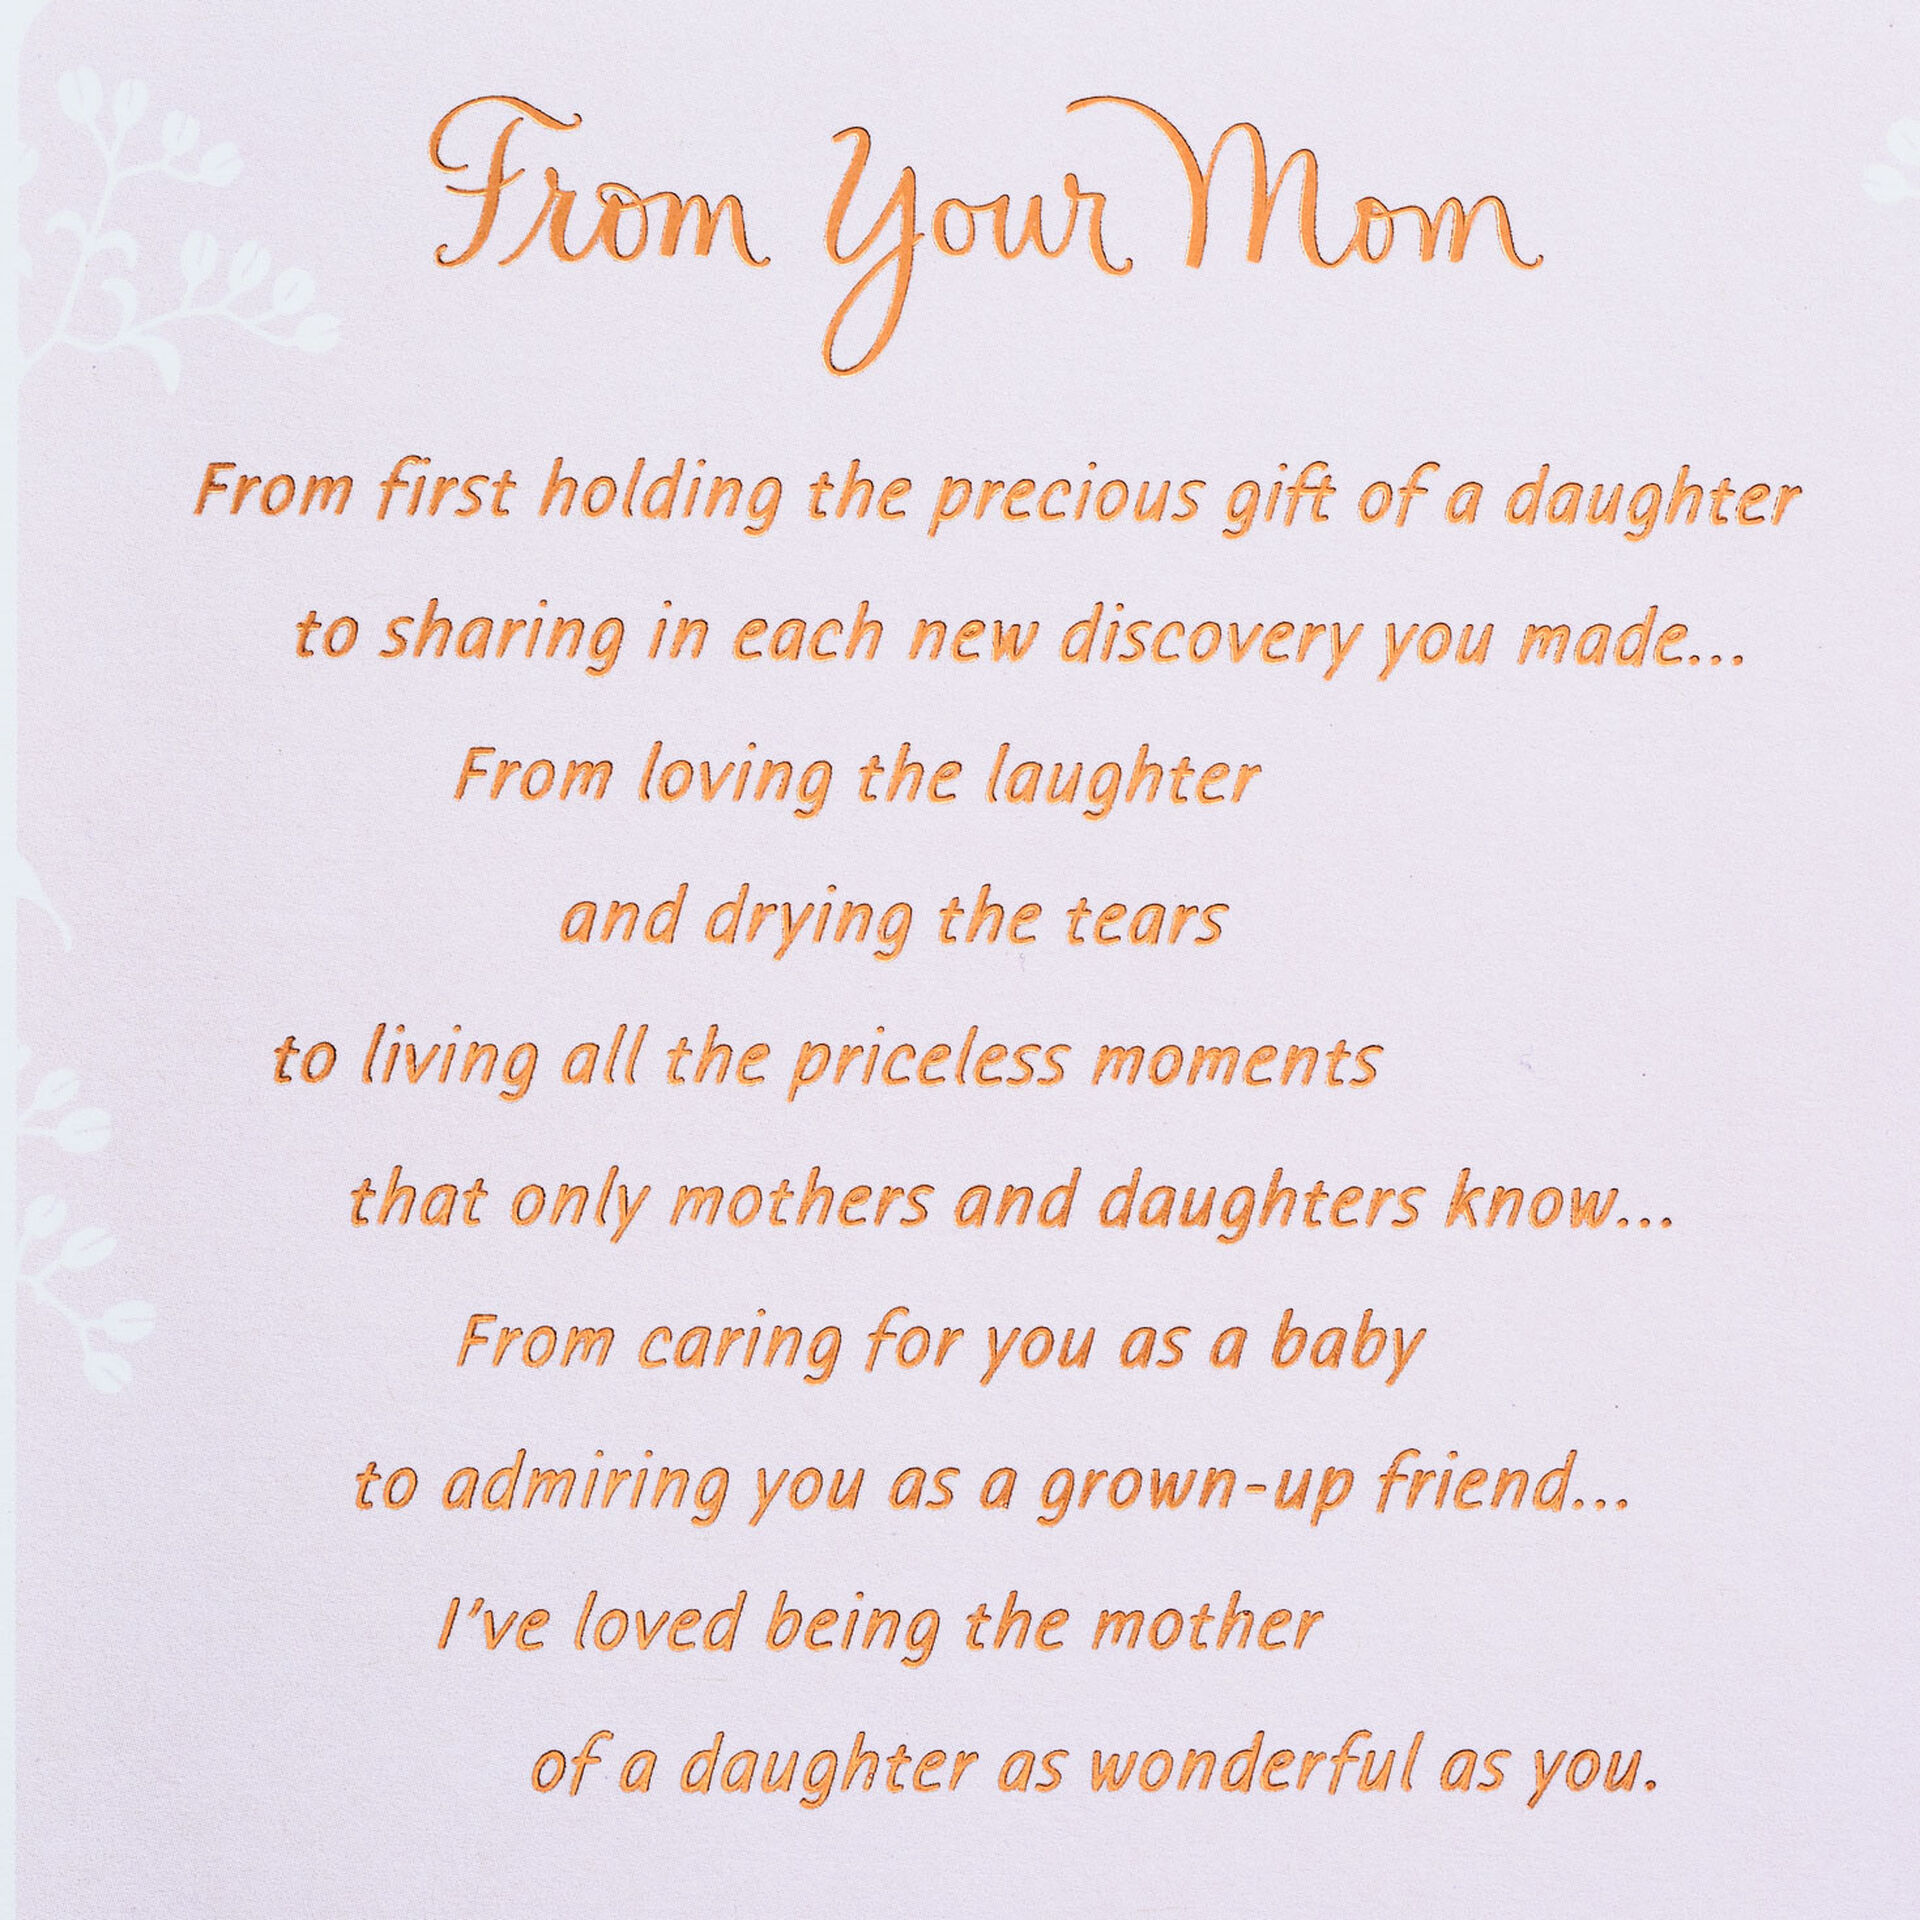 Wishes For A Wonderful Daughter Birthday Card From Mom And Dad Greeting Cards Hallmark